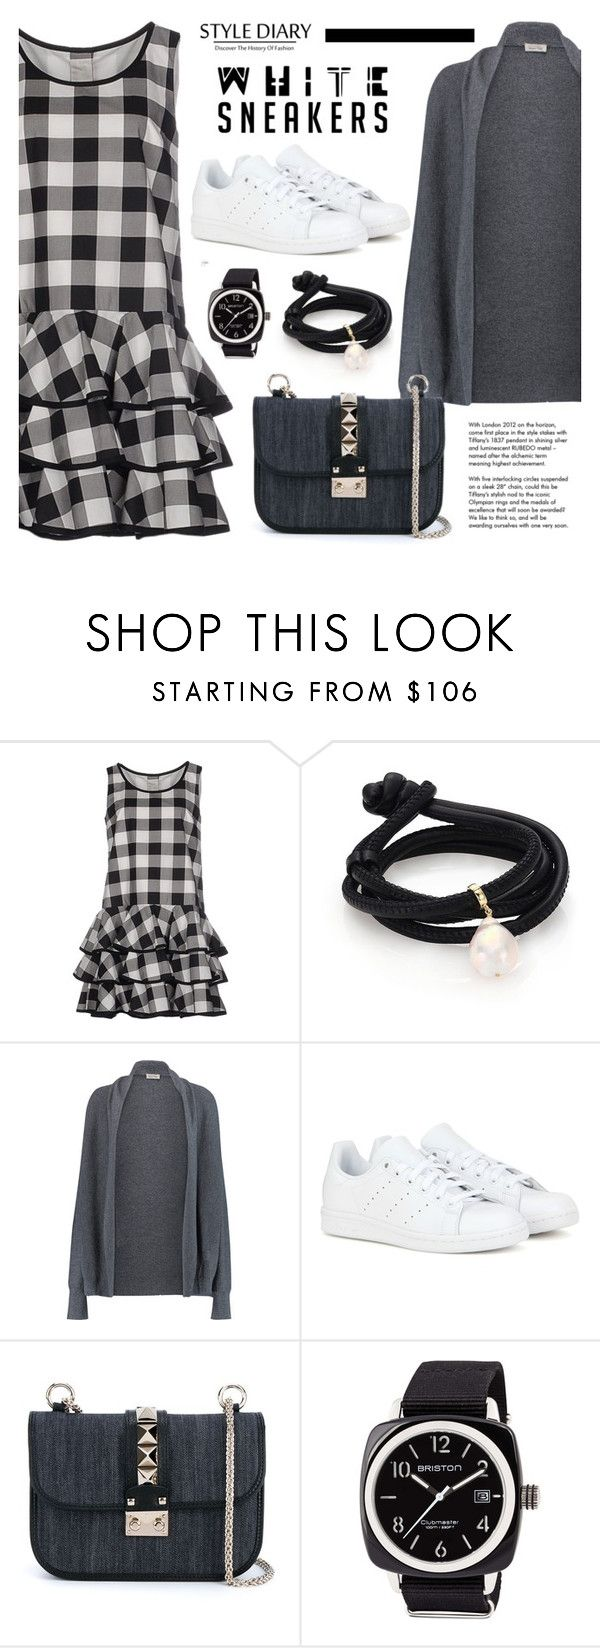 """Bright White Sneakers"" by cly88 ❤ liked on Polyvore featuring Dolce&Gabbana, mizuki, American Vintage, adidas, Valentino, Briston, Tiffany & Co., cardigan, watches and ruffles"